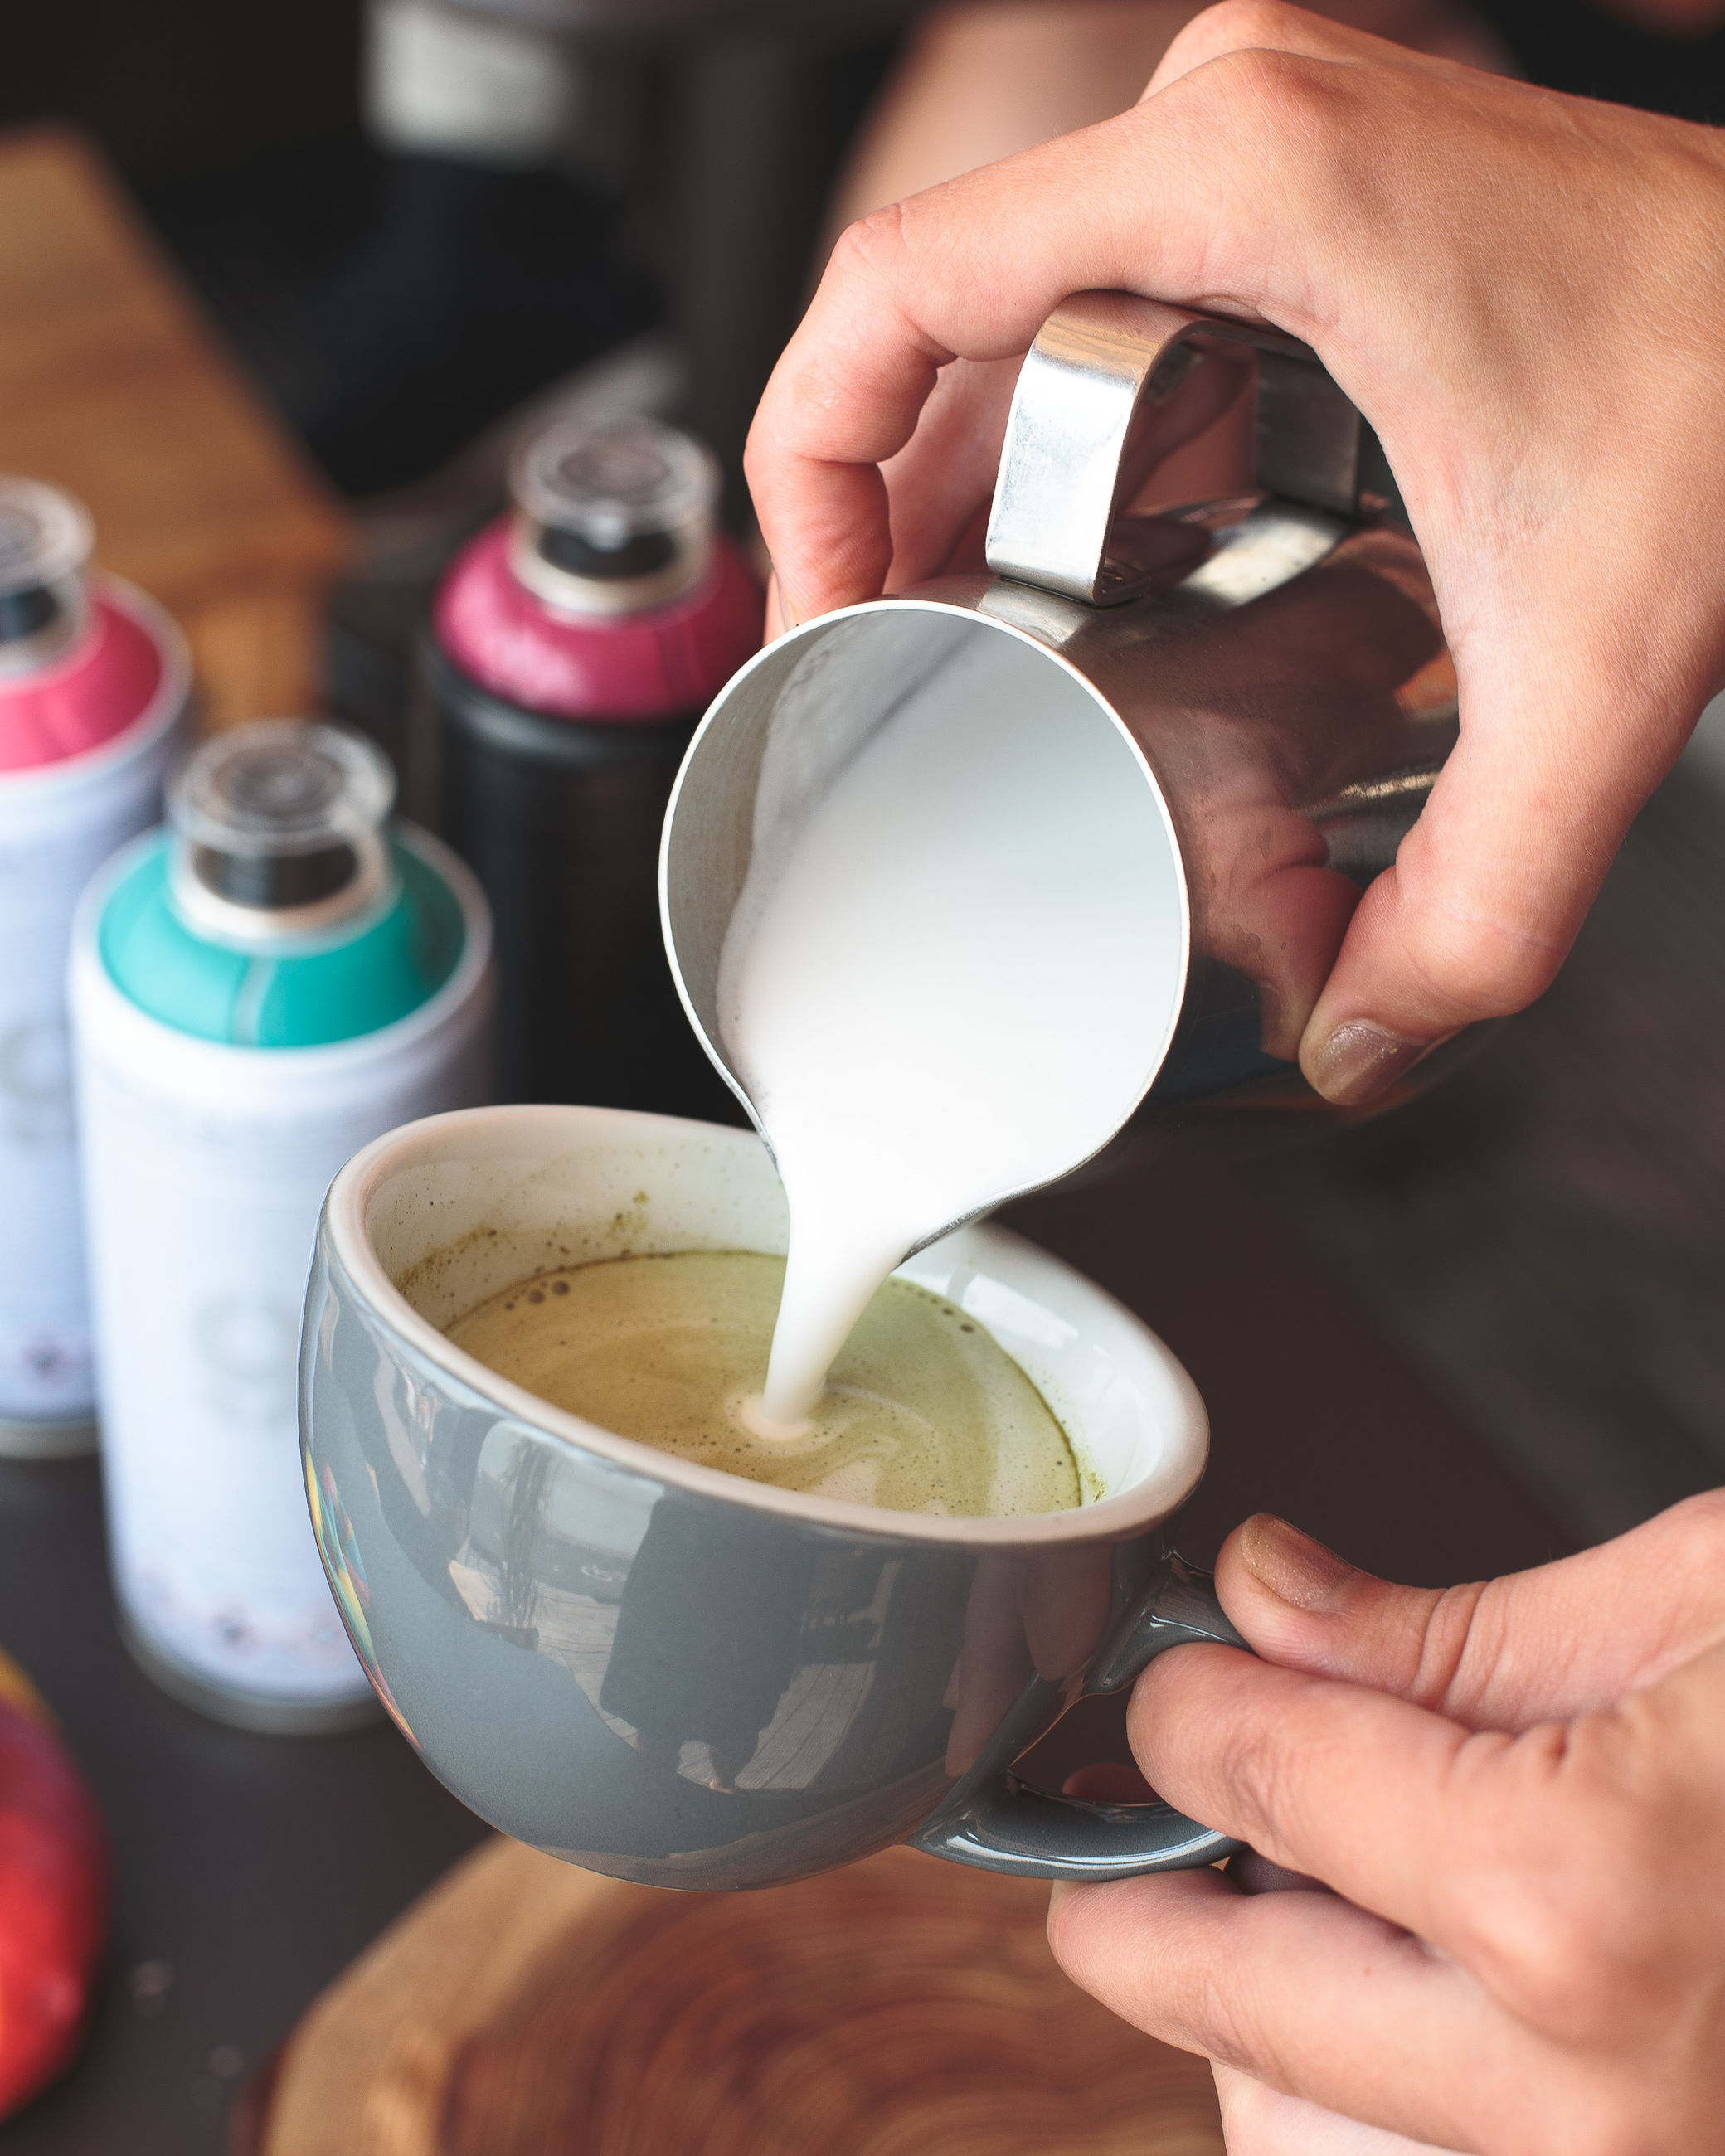 Cropped image of hand pouring milk in coffee cup